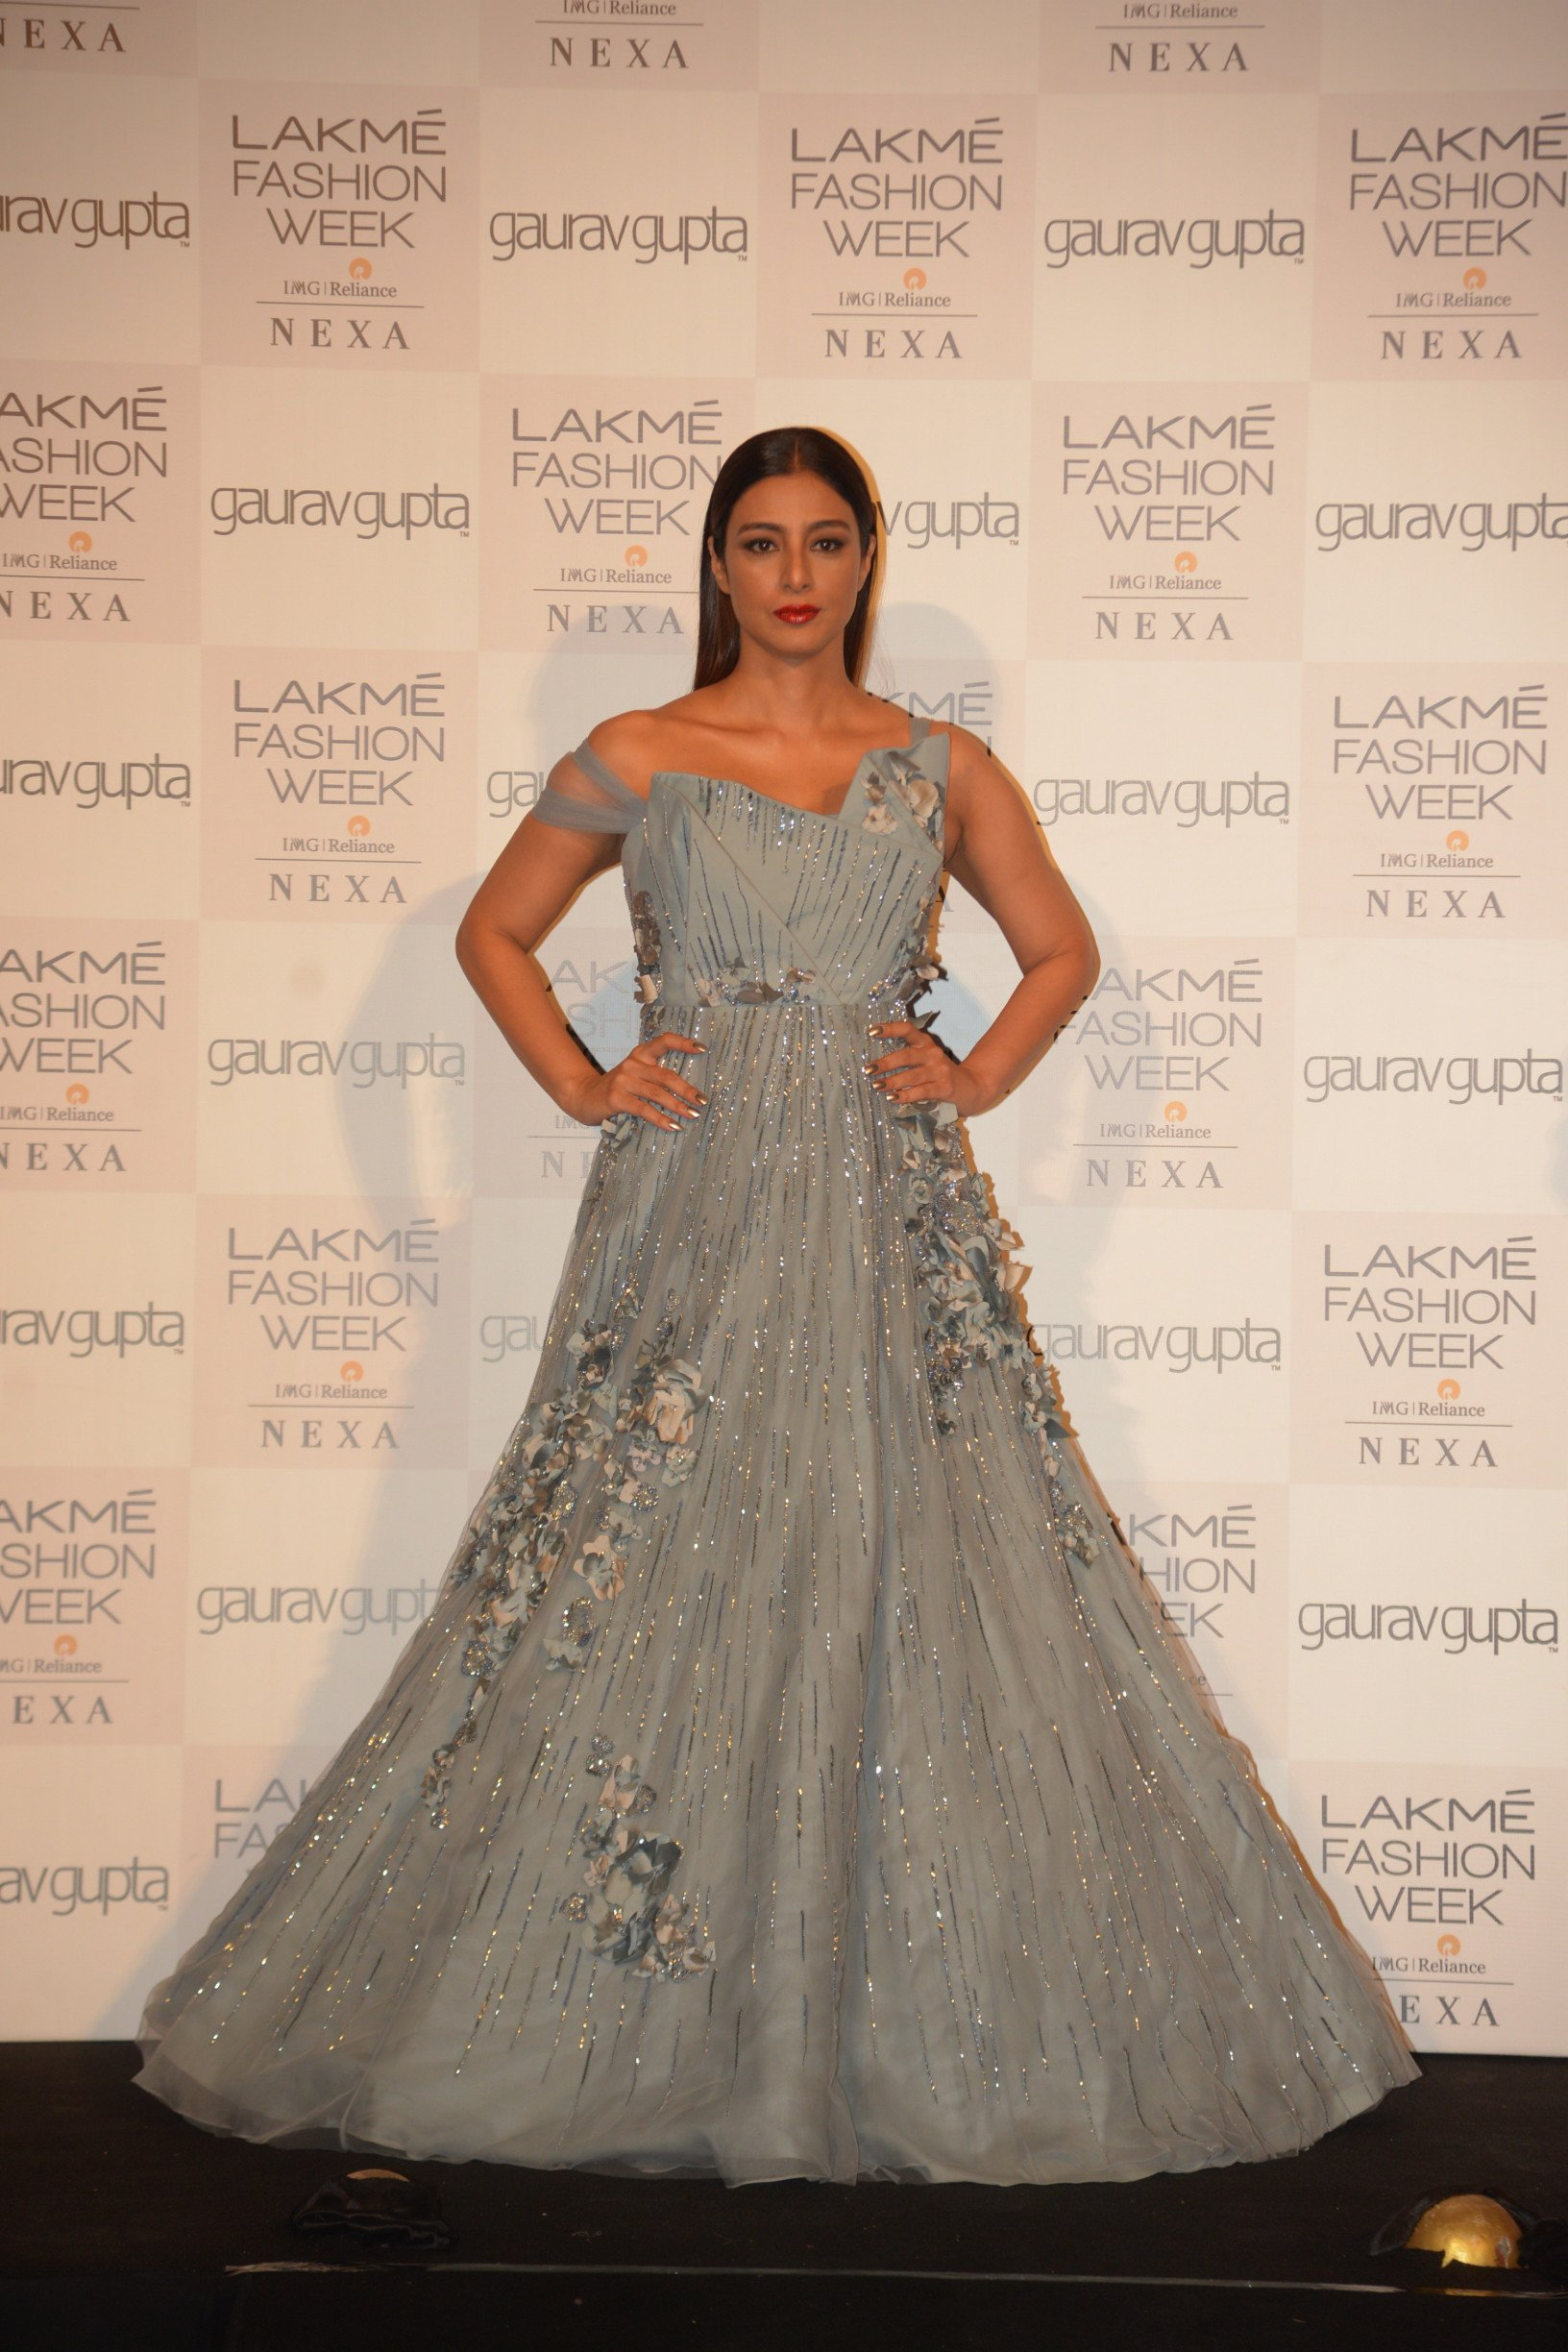 Gaurav Gupta's Opening  Show Was A Fabulous 'Unfolding' For Lakmé Fashion Week 2019 at The Grand Royal Opera House